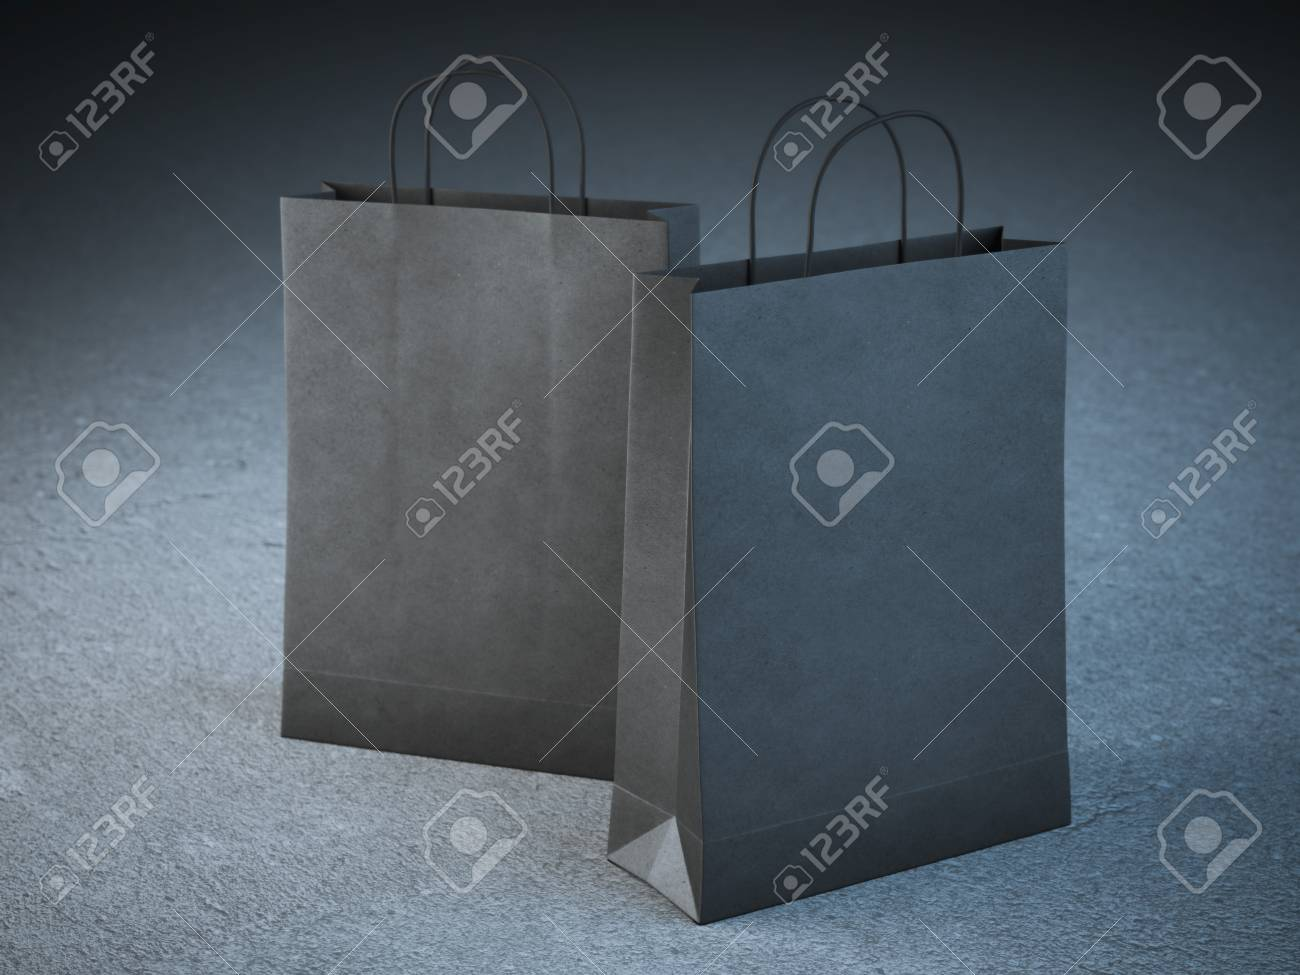 Two Black Paper Bags With Handles On Floor Stock Photo Picture And